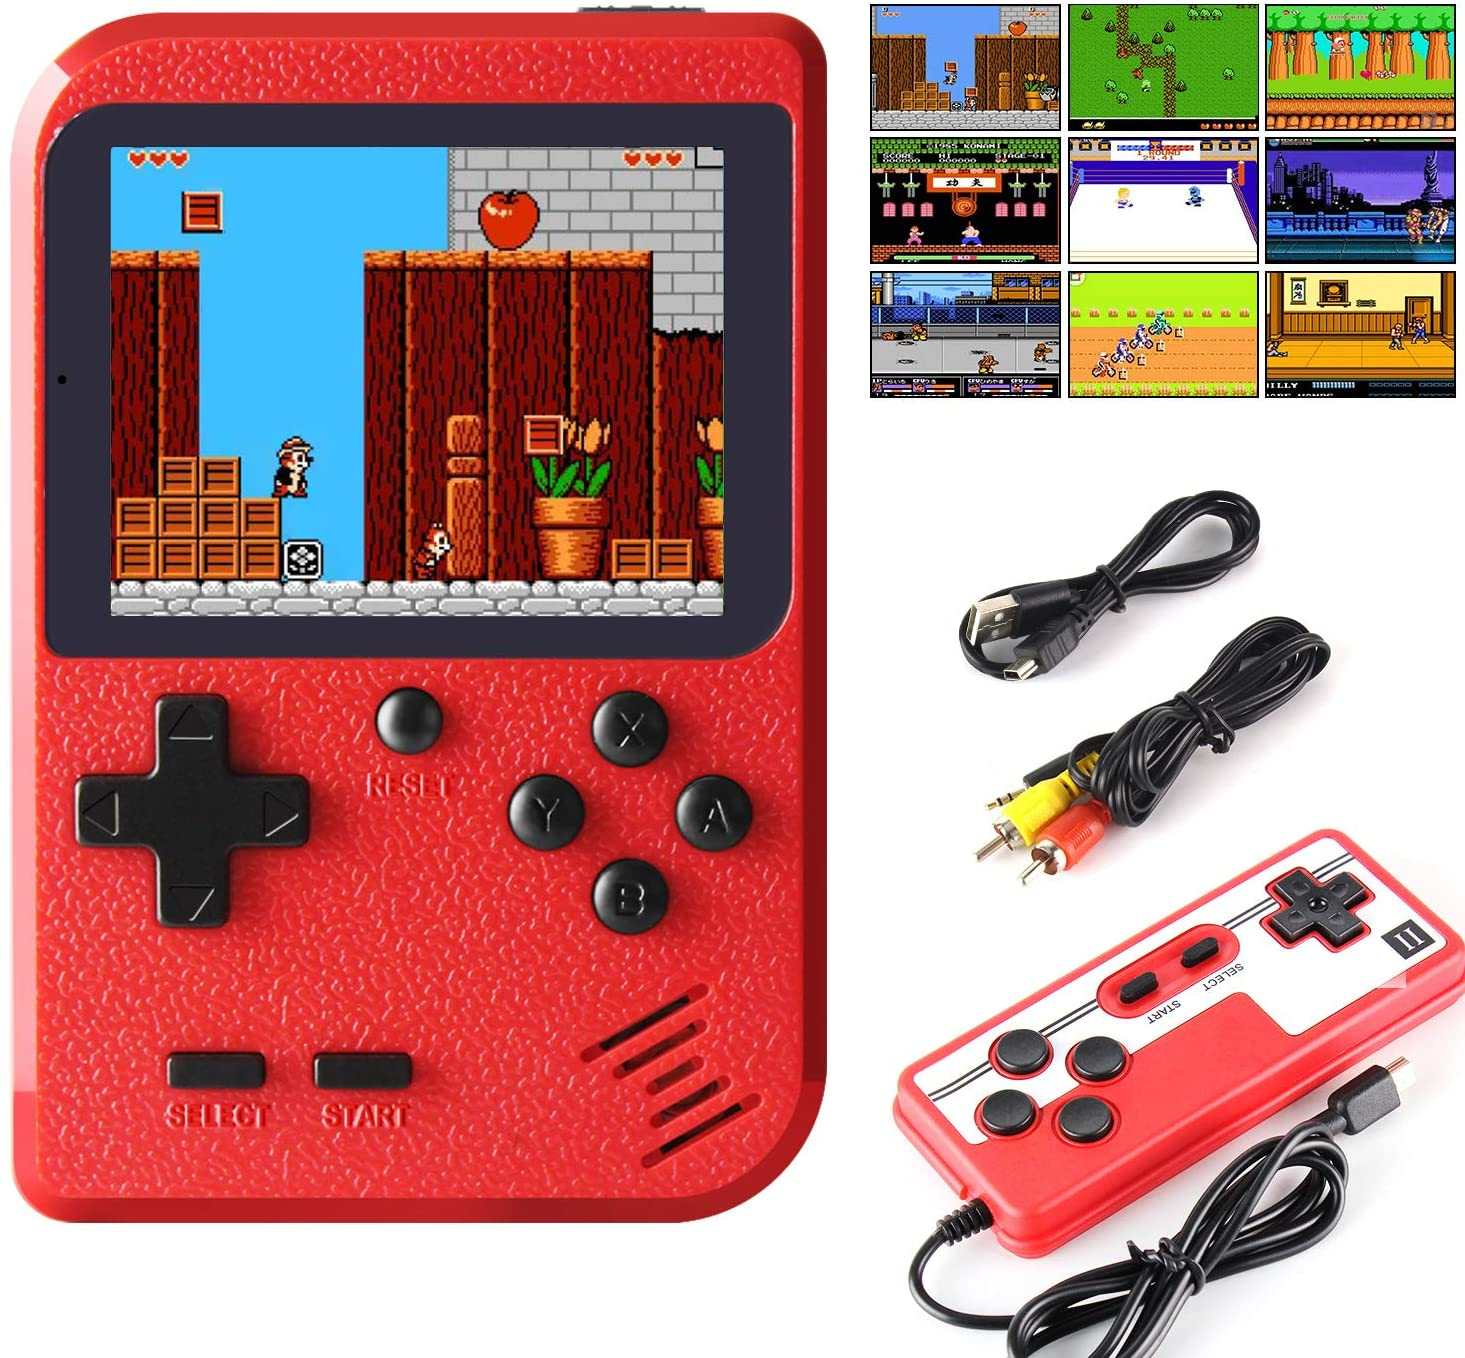 shopify-Portable Game Pad With 400 Games Included + Additional Player Controller-1